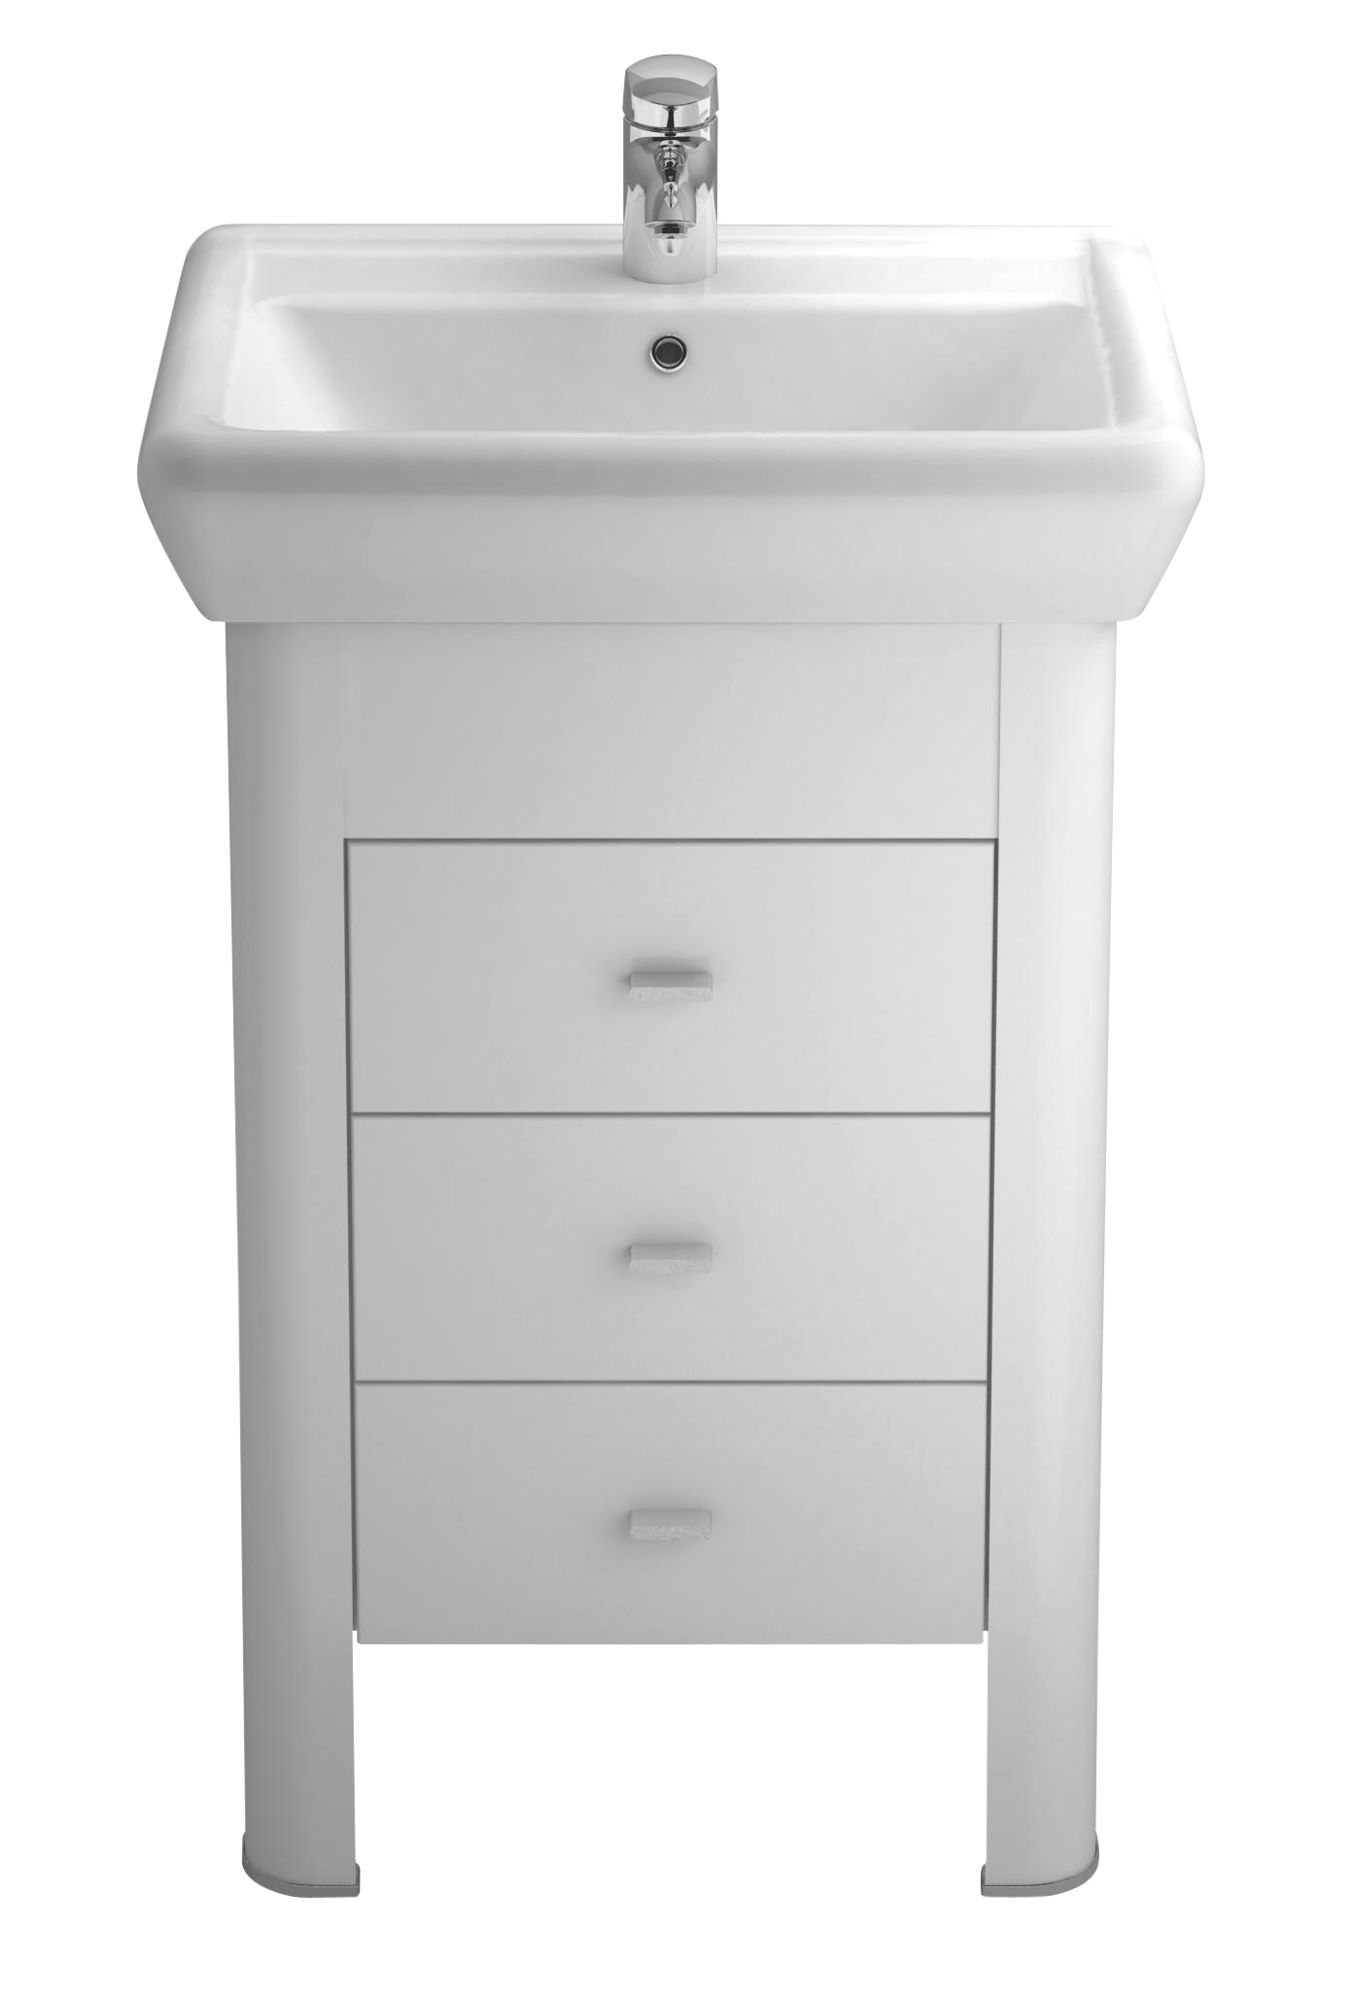 Cooke Lewis Luciana Pedestal Basin Departments Diy At B Q Countertop Basin Bathroom Collections Basin